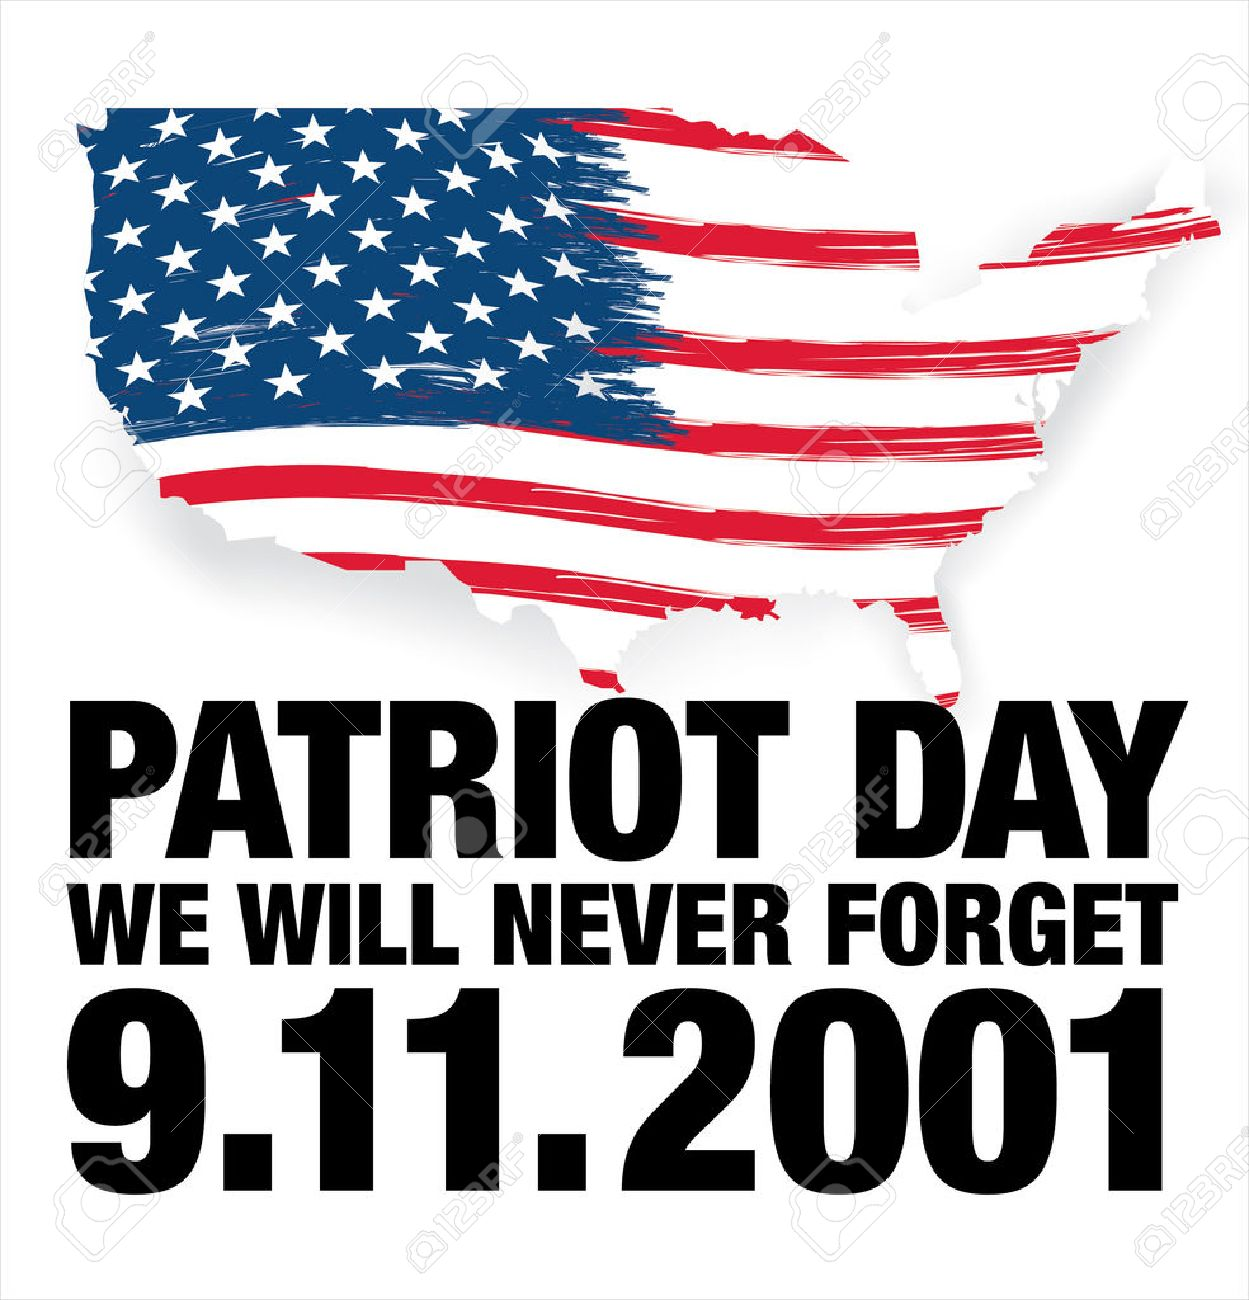 Patriot Day. September 11. We will never forget.